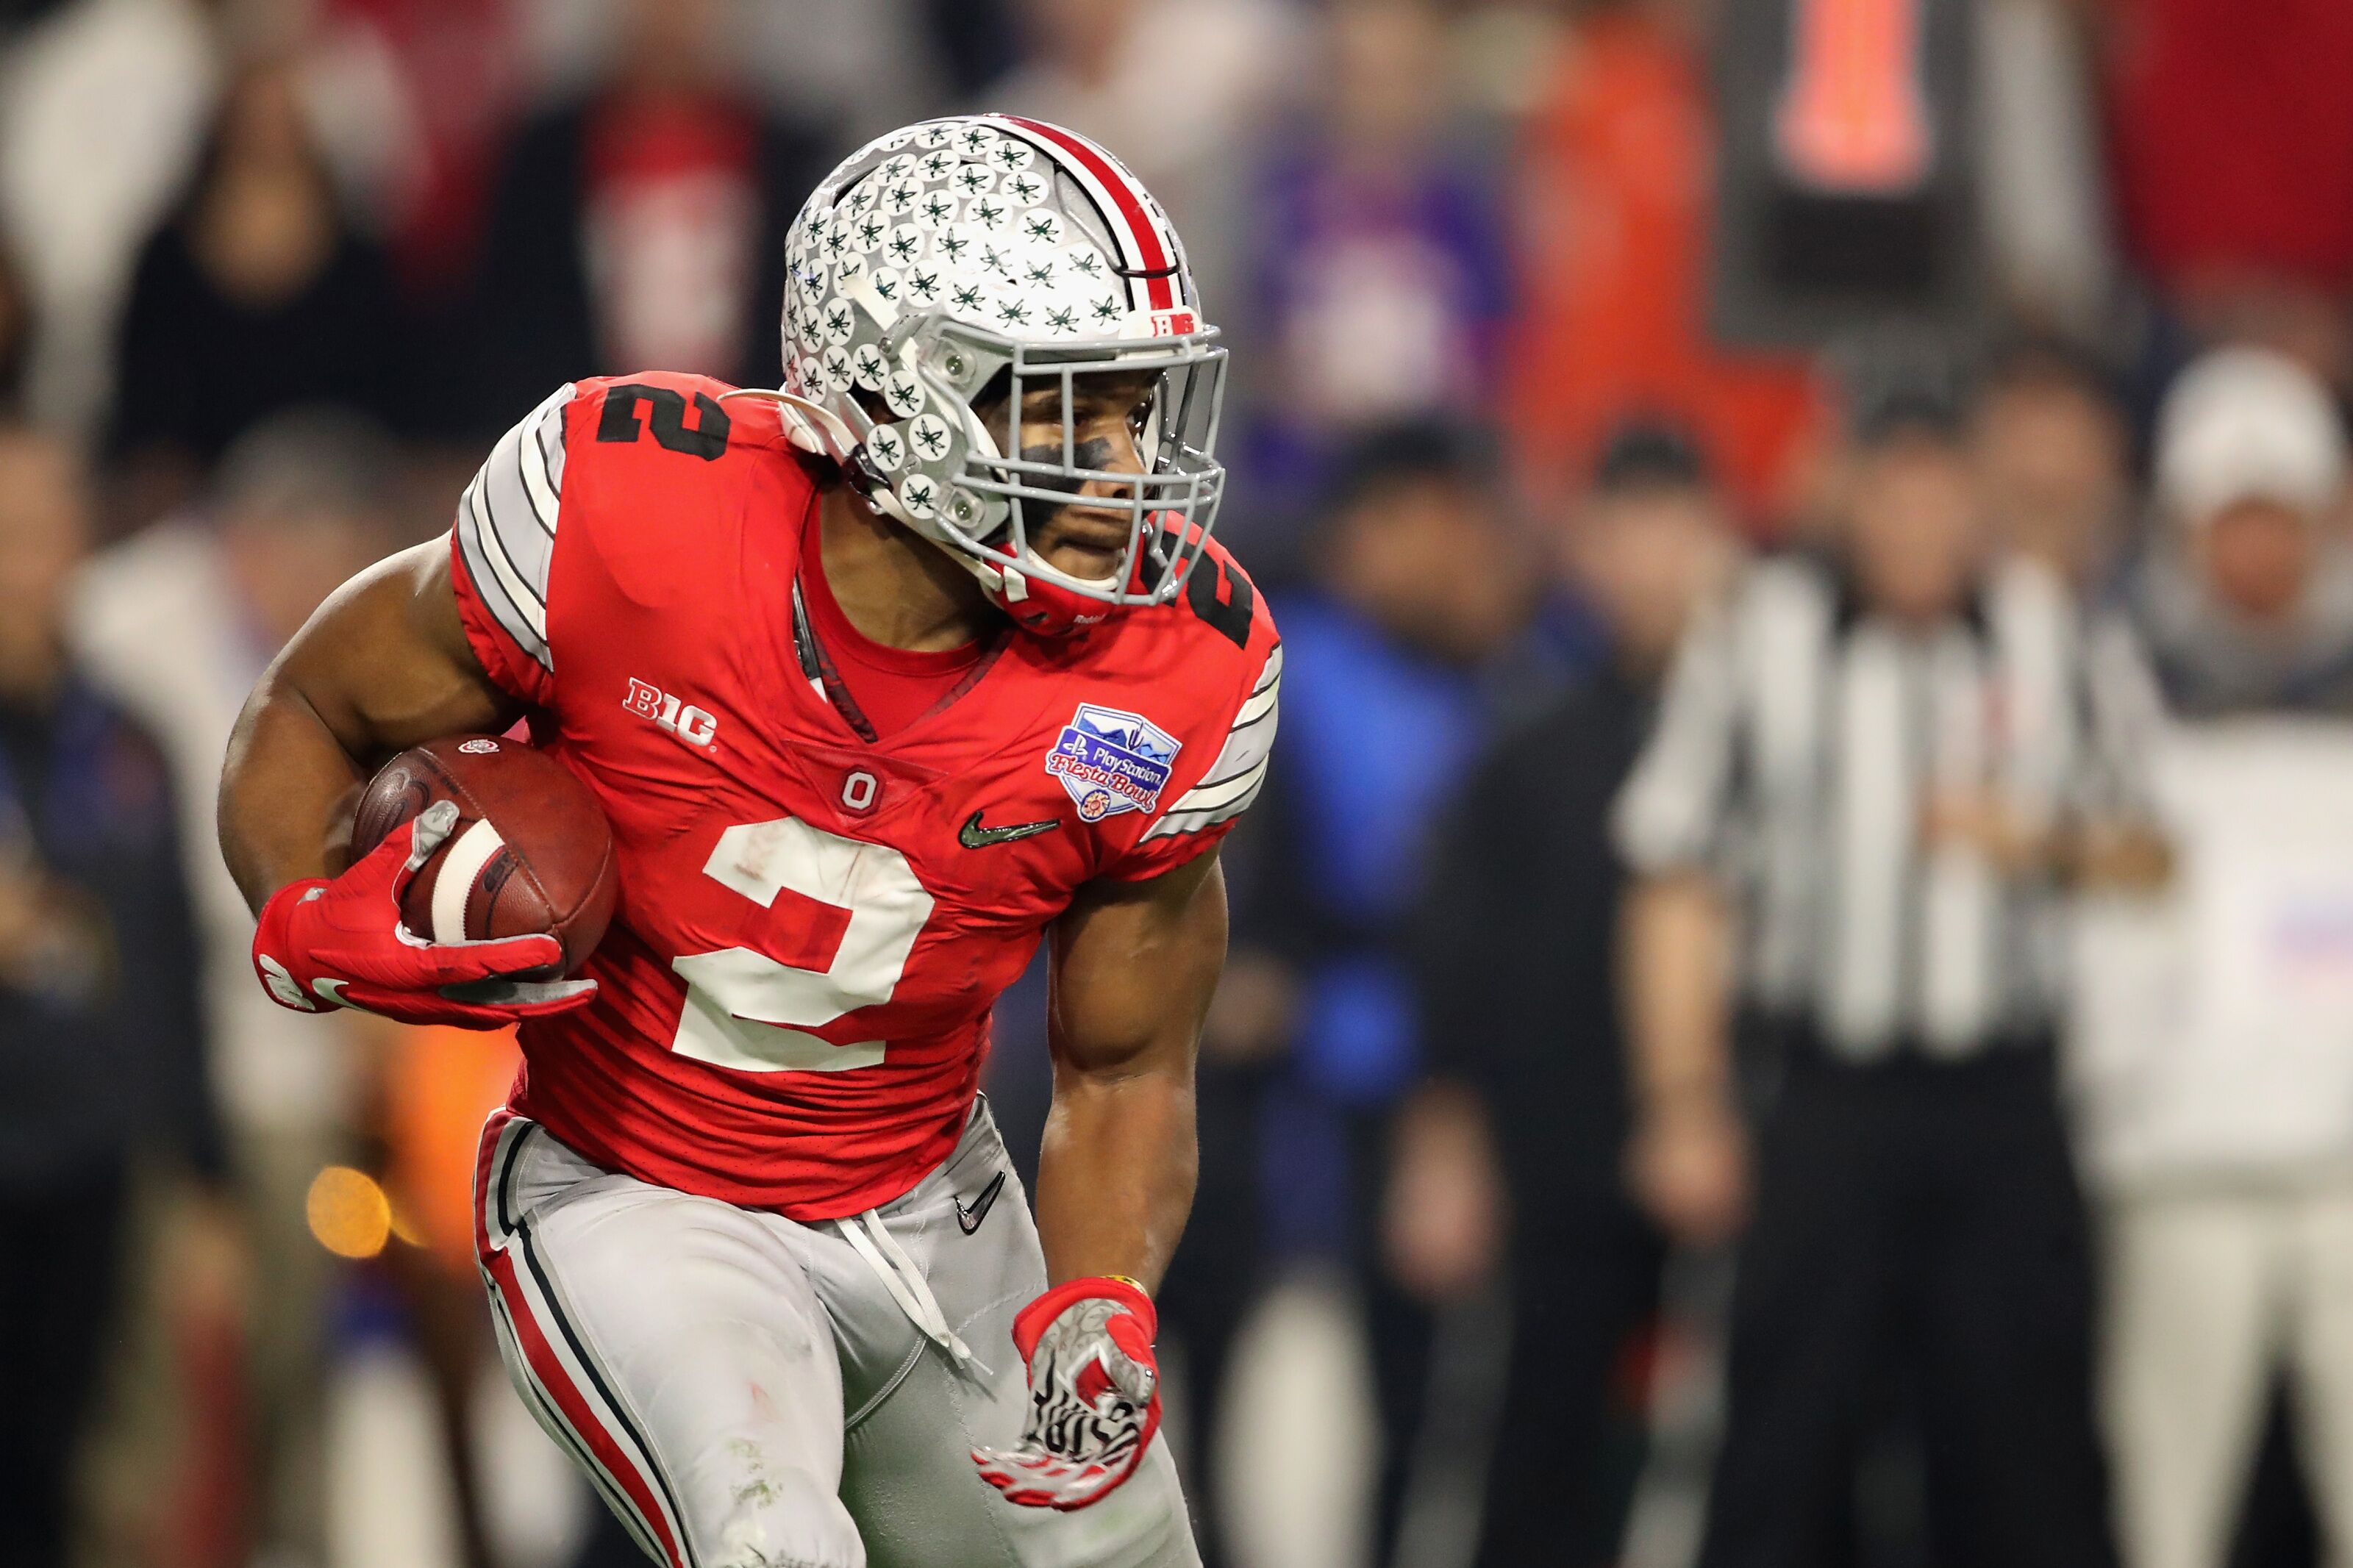 New Orleans Saints Draft Analysis: 24th overall pick, J.K. Dobbins